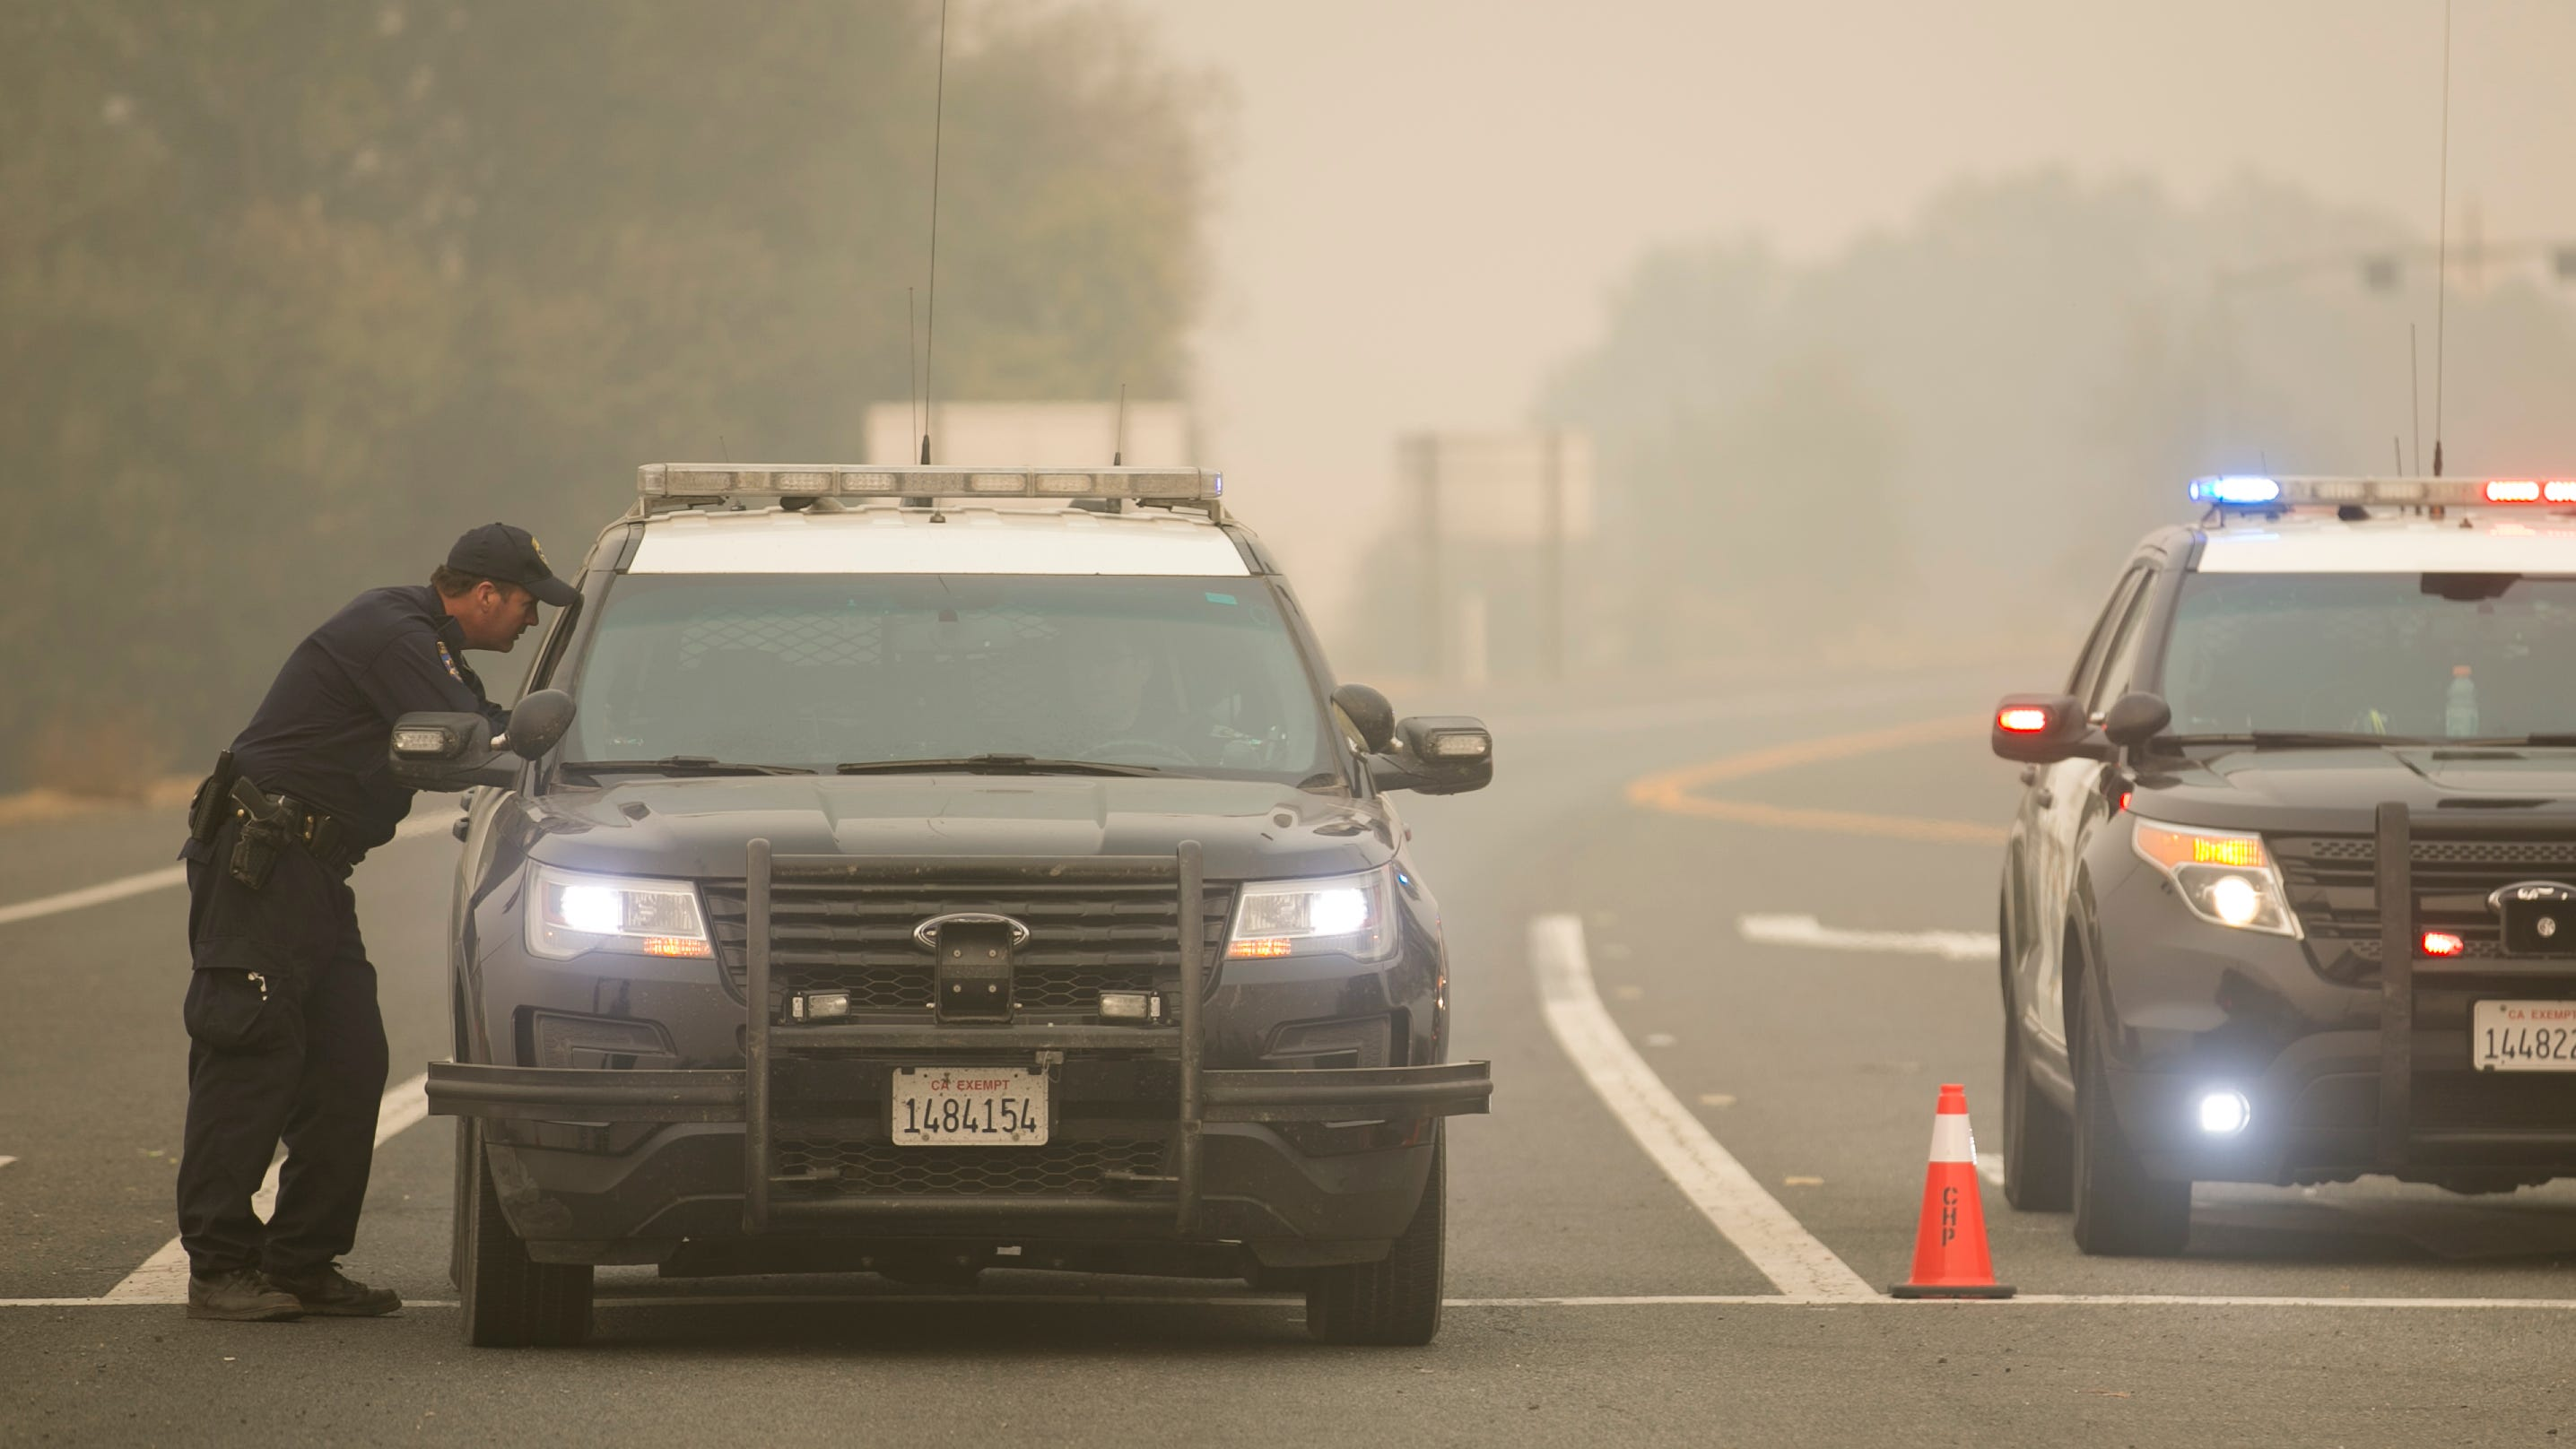 Police vehicles block Highway 70 after an officer involved shooting resulted in the death of a suspect in Butte Valley, California on Nov. 15, 2018. The shooting occurred after a high-speed chase and ended within the evacuation perimeter of the Camp Fire.